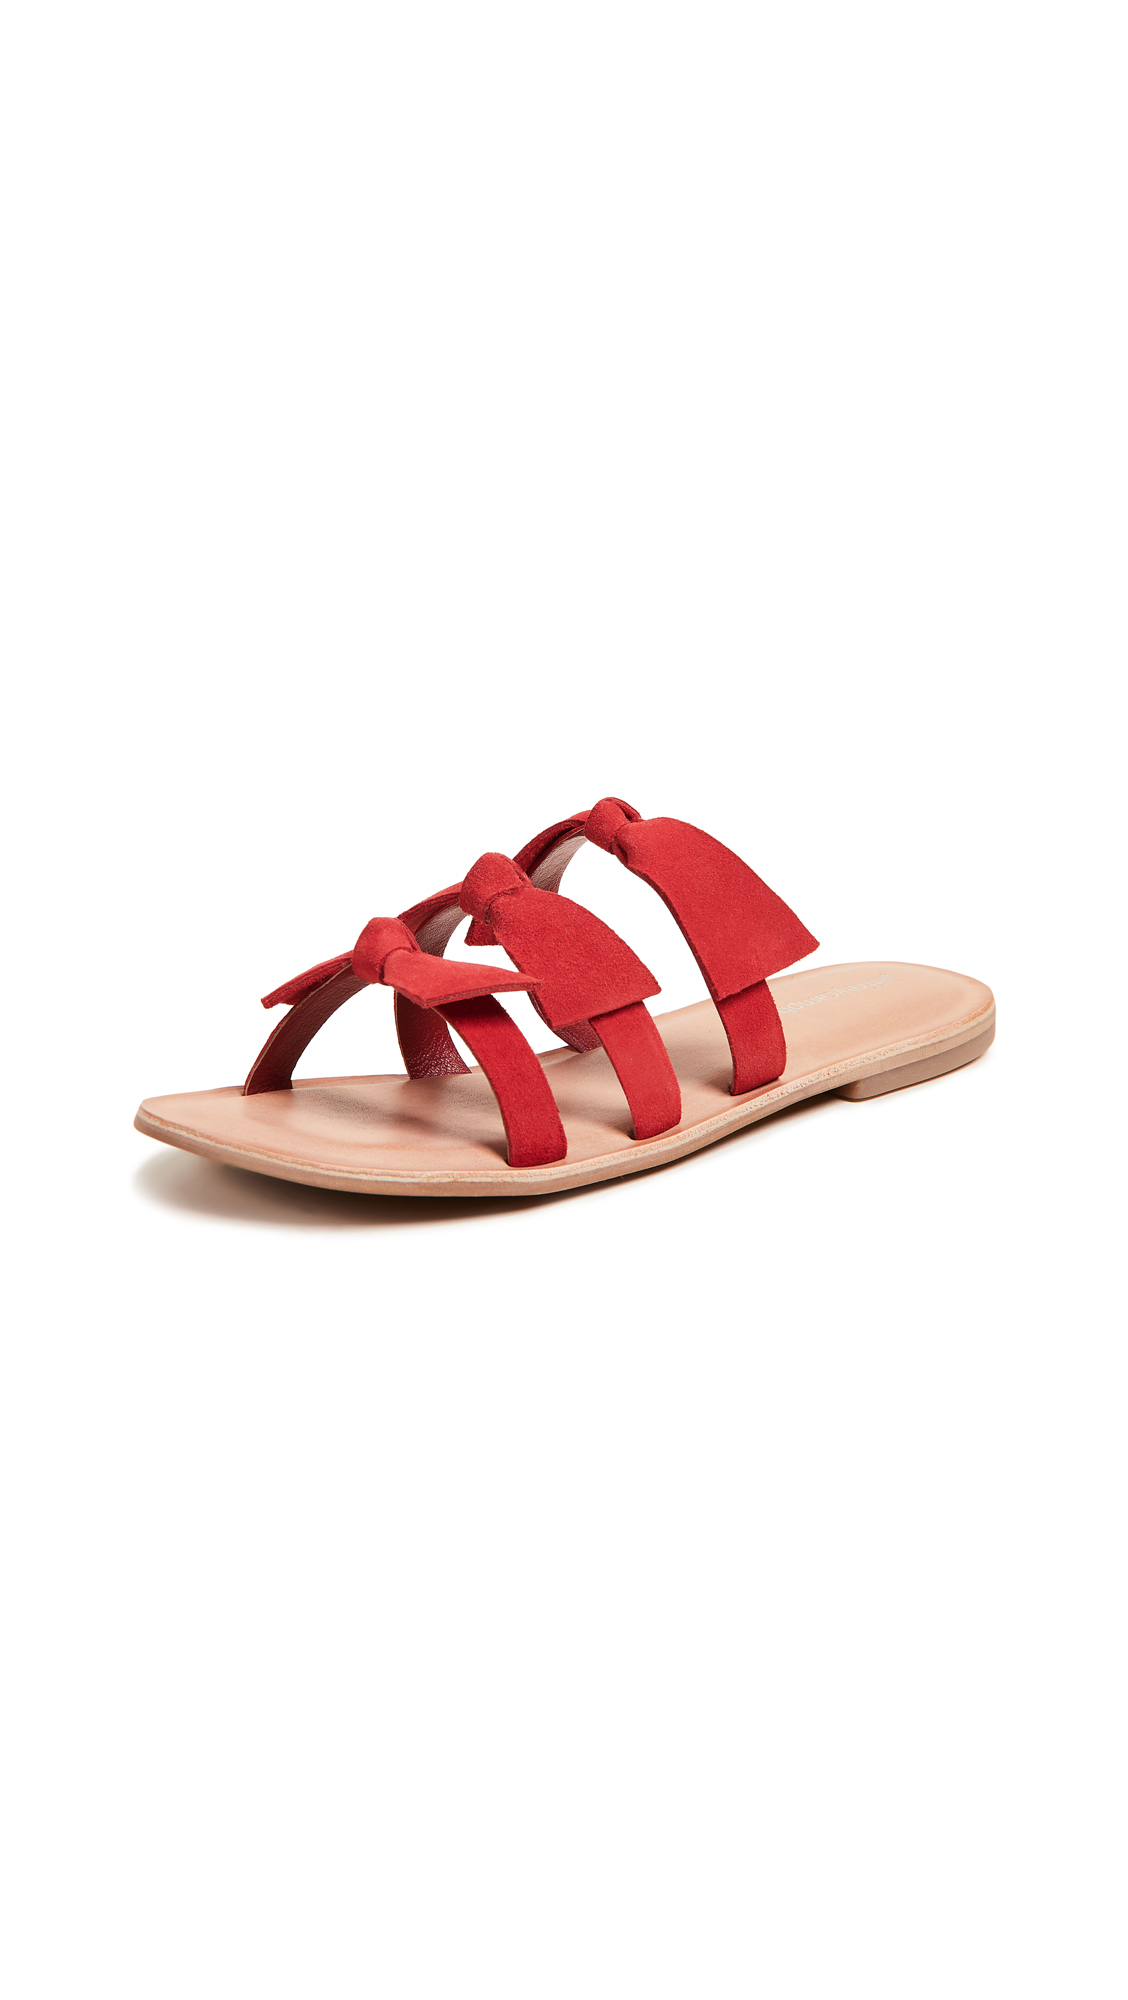 Jeffrey Campbell Atone Bow Sandals - Red